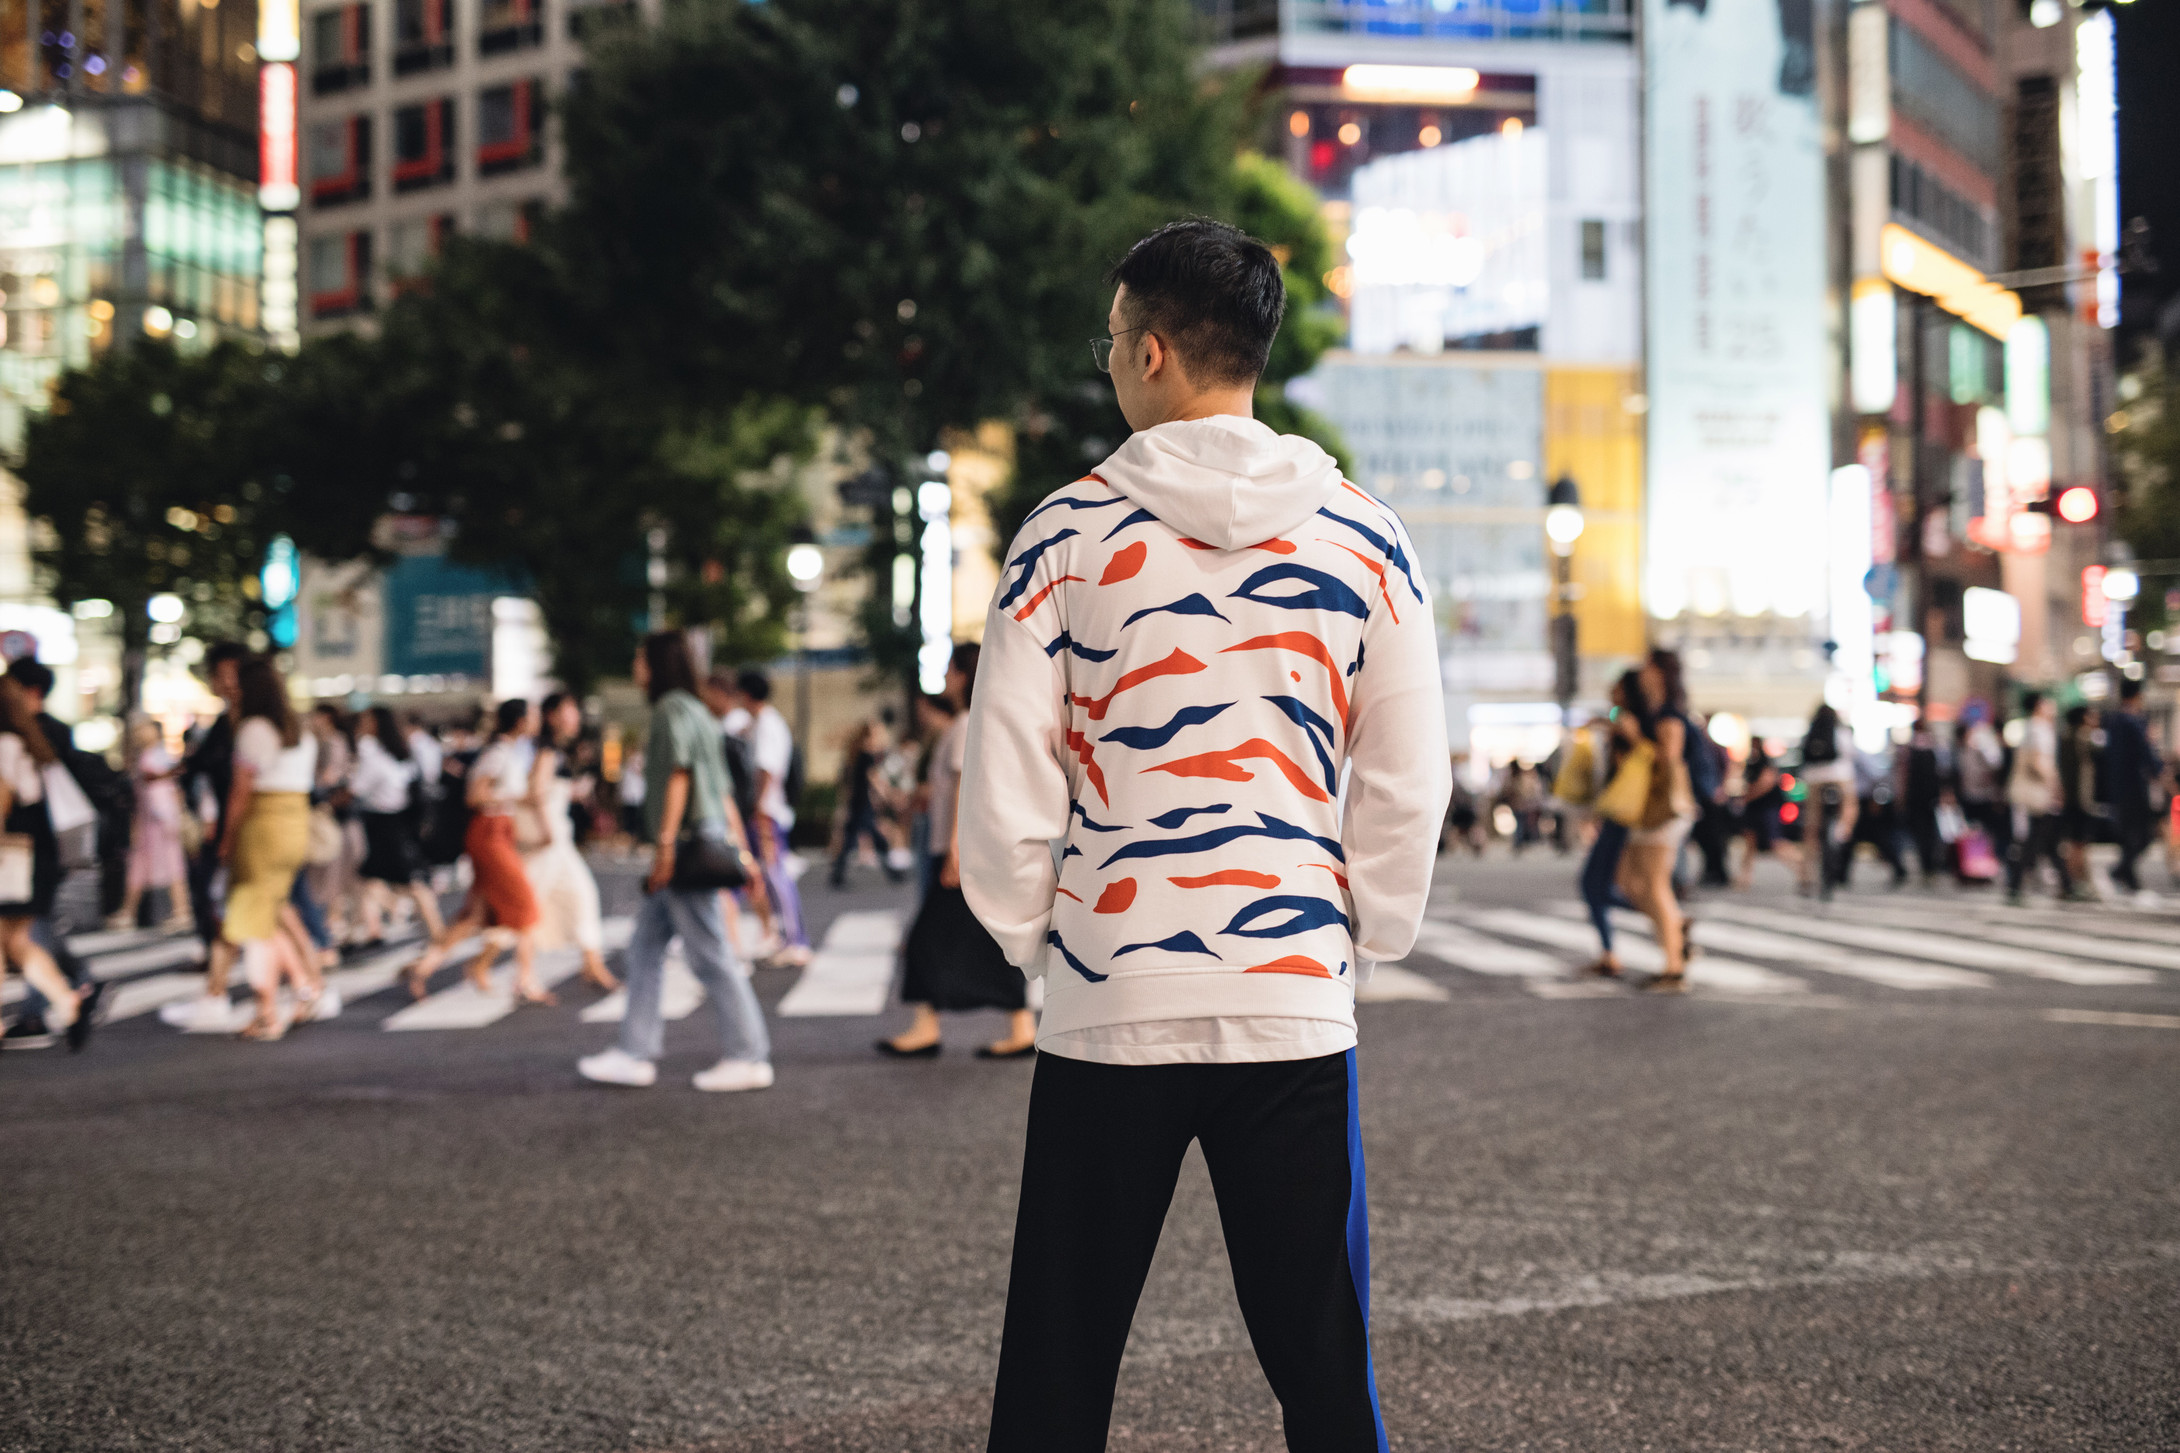 https_%2F%2Fhypebeast.com%2Fimage%2F2018%2F07%2Fkenzo-tiger-beer-rare-stripes-launch-1.jpg